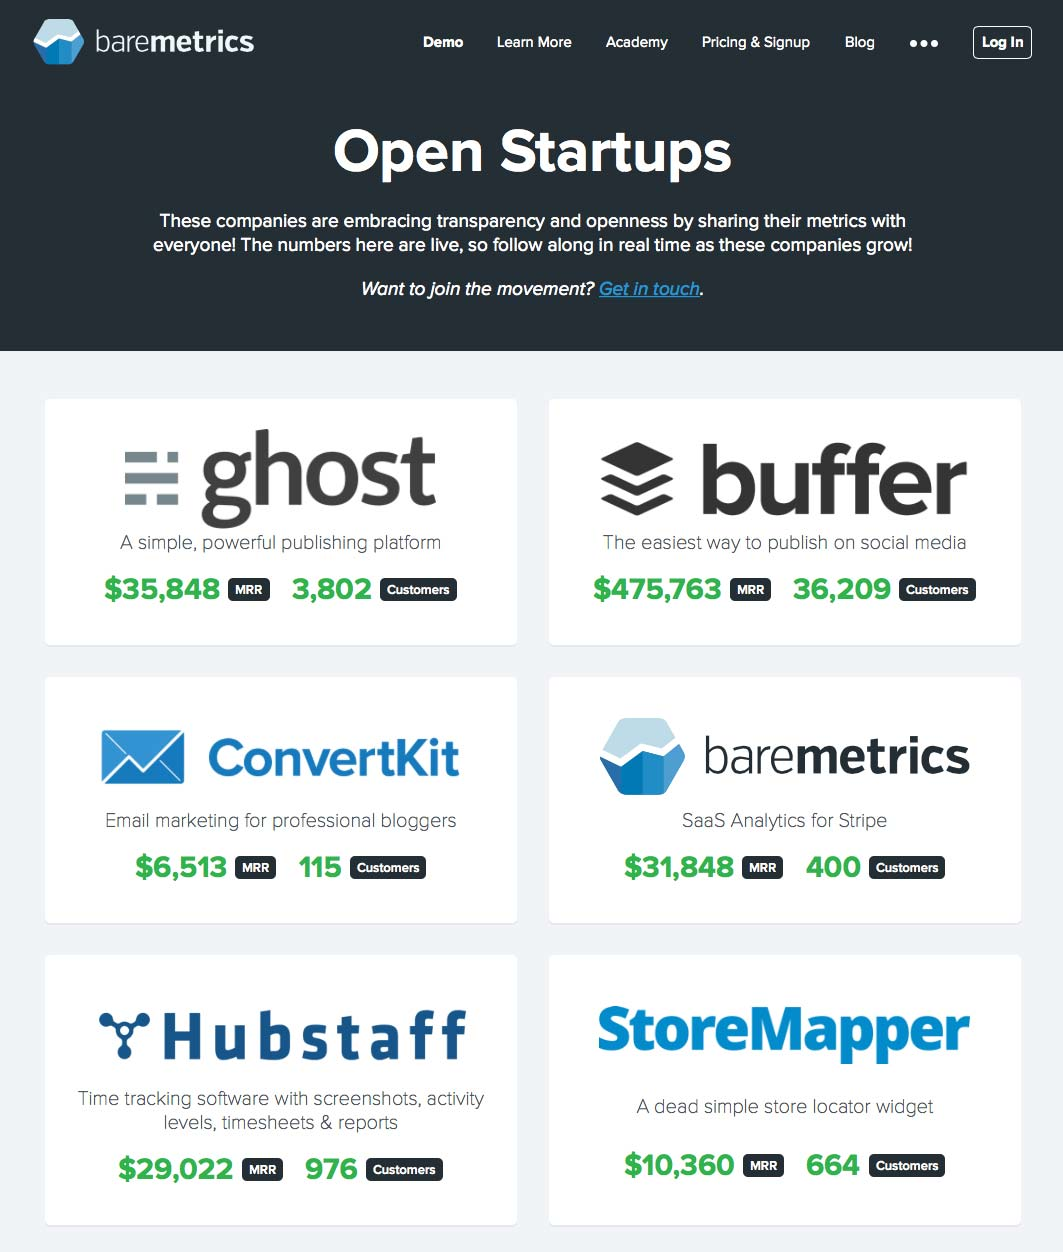 open_startups_example